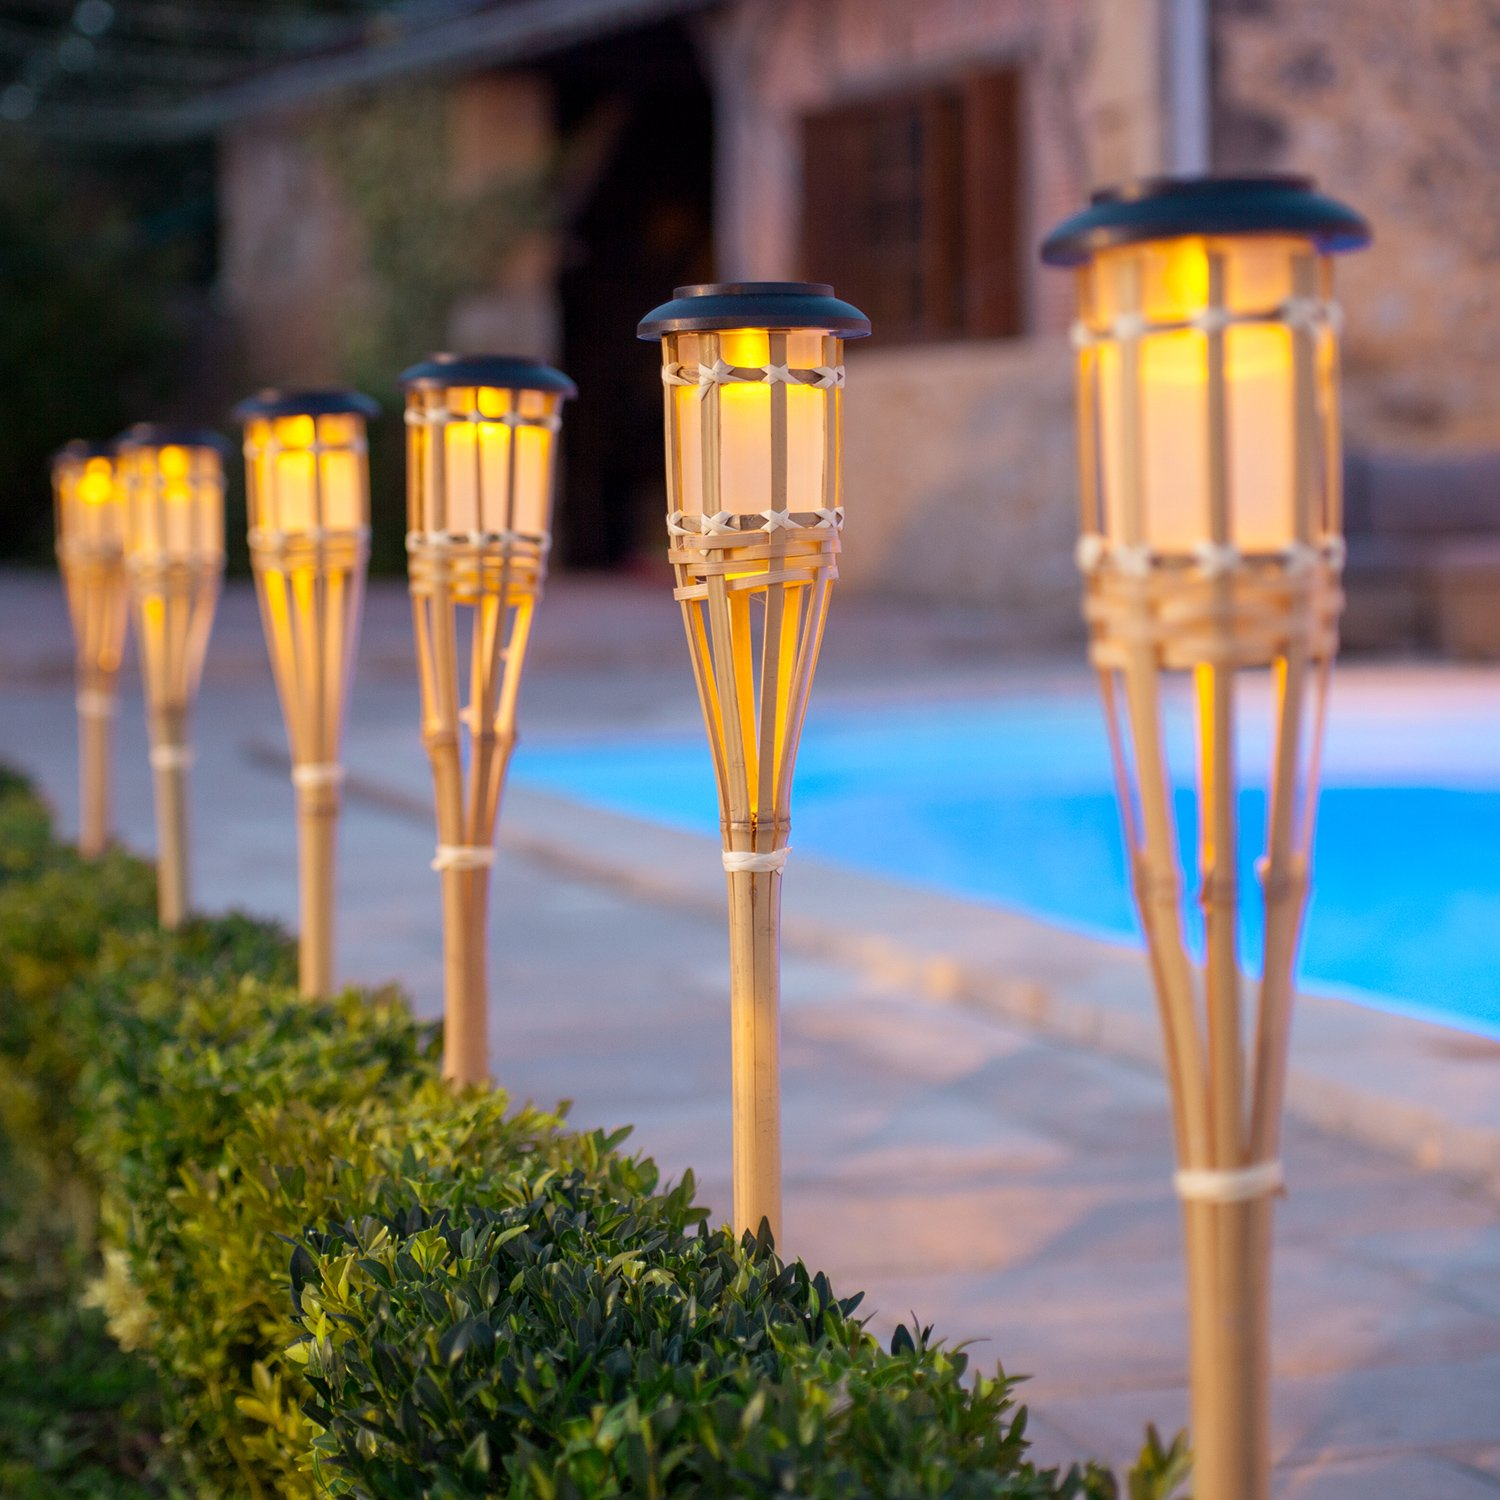 outdoor torch lighting. Set Of 10 Large Solar Powered LED Bamboo Garden Torches By Lights4fun: Amazon.co.uk: \u0026 Outdoors Outdoor Torch Lighting R